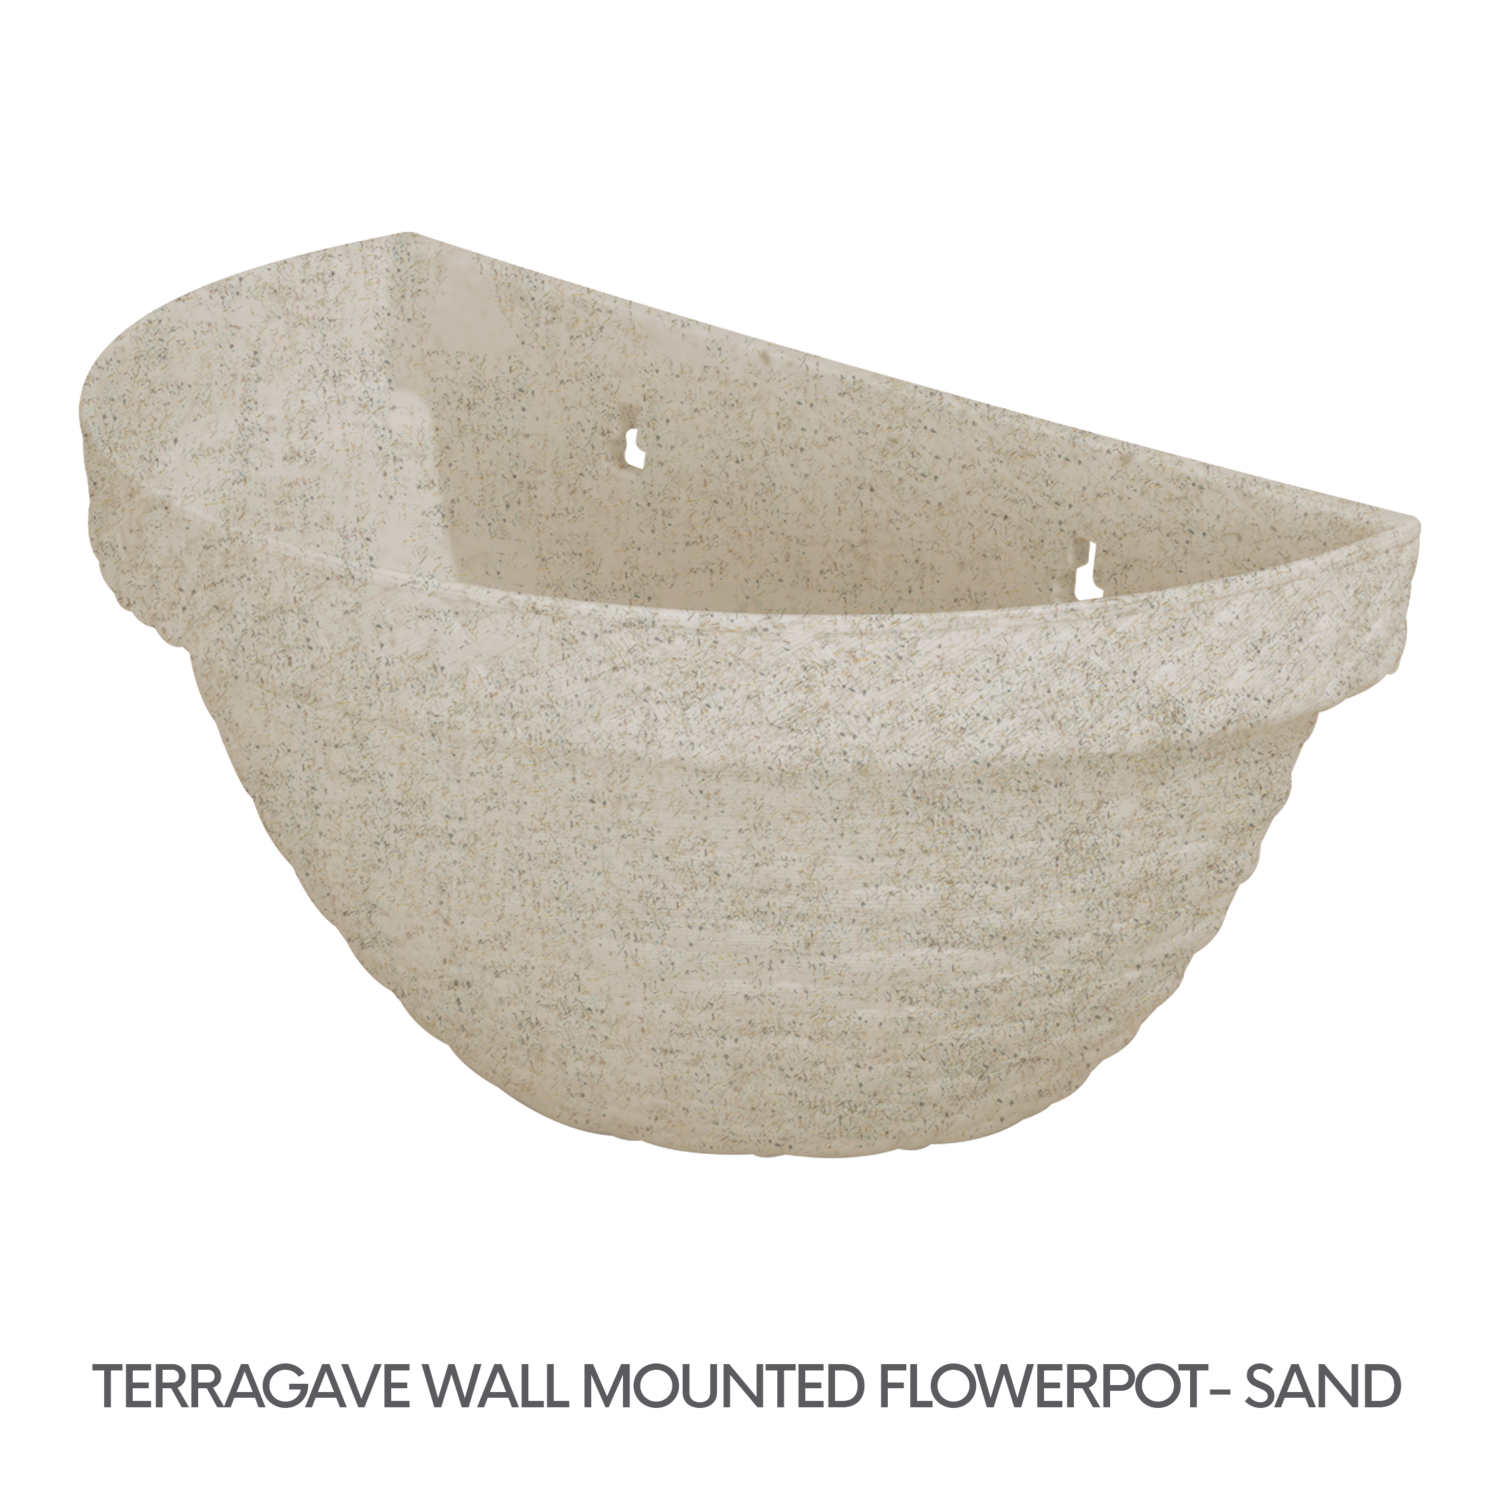 7 TERRAGAVE WALL MOUNTED FLOWERPOT - SAND.png